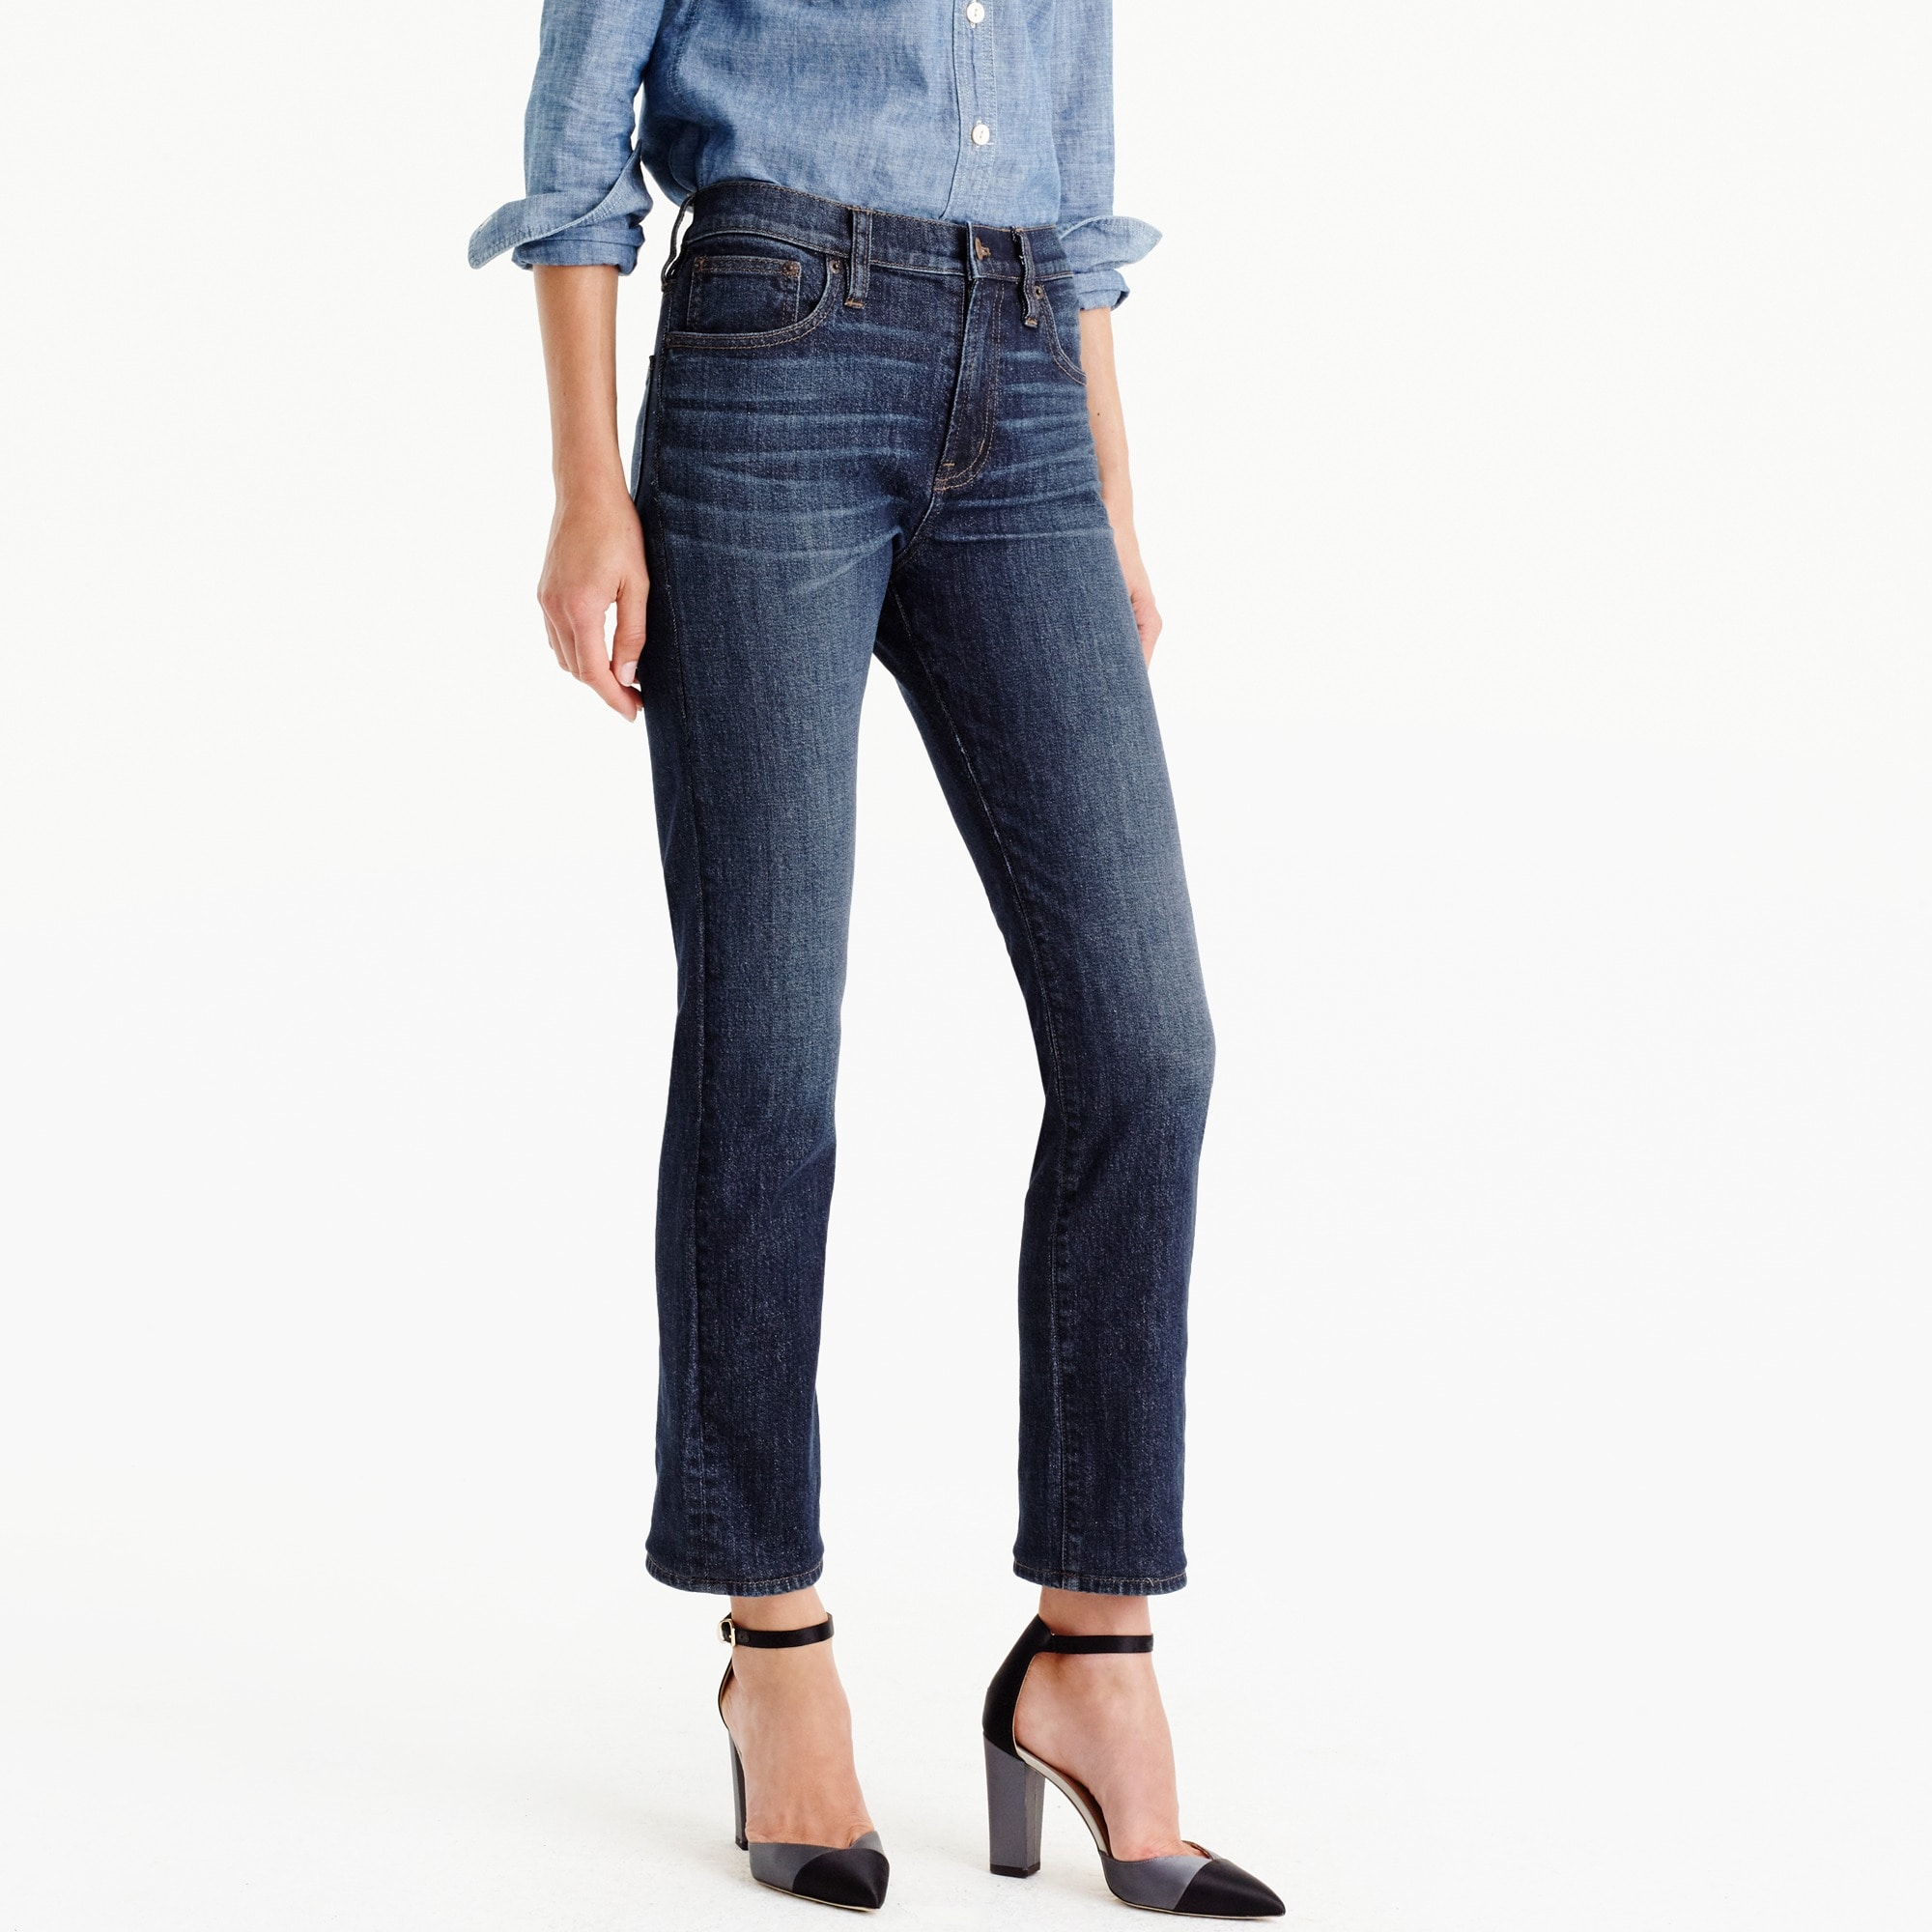 Tall Vintage crop jean in Leopold wash